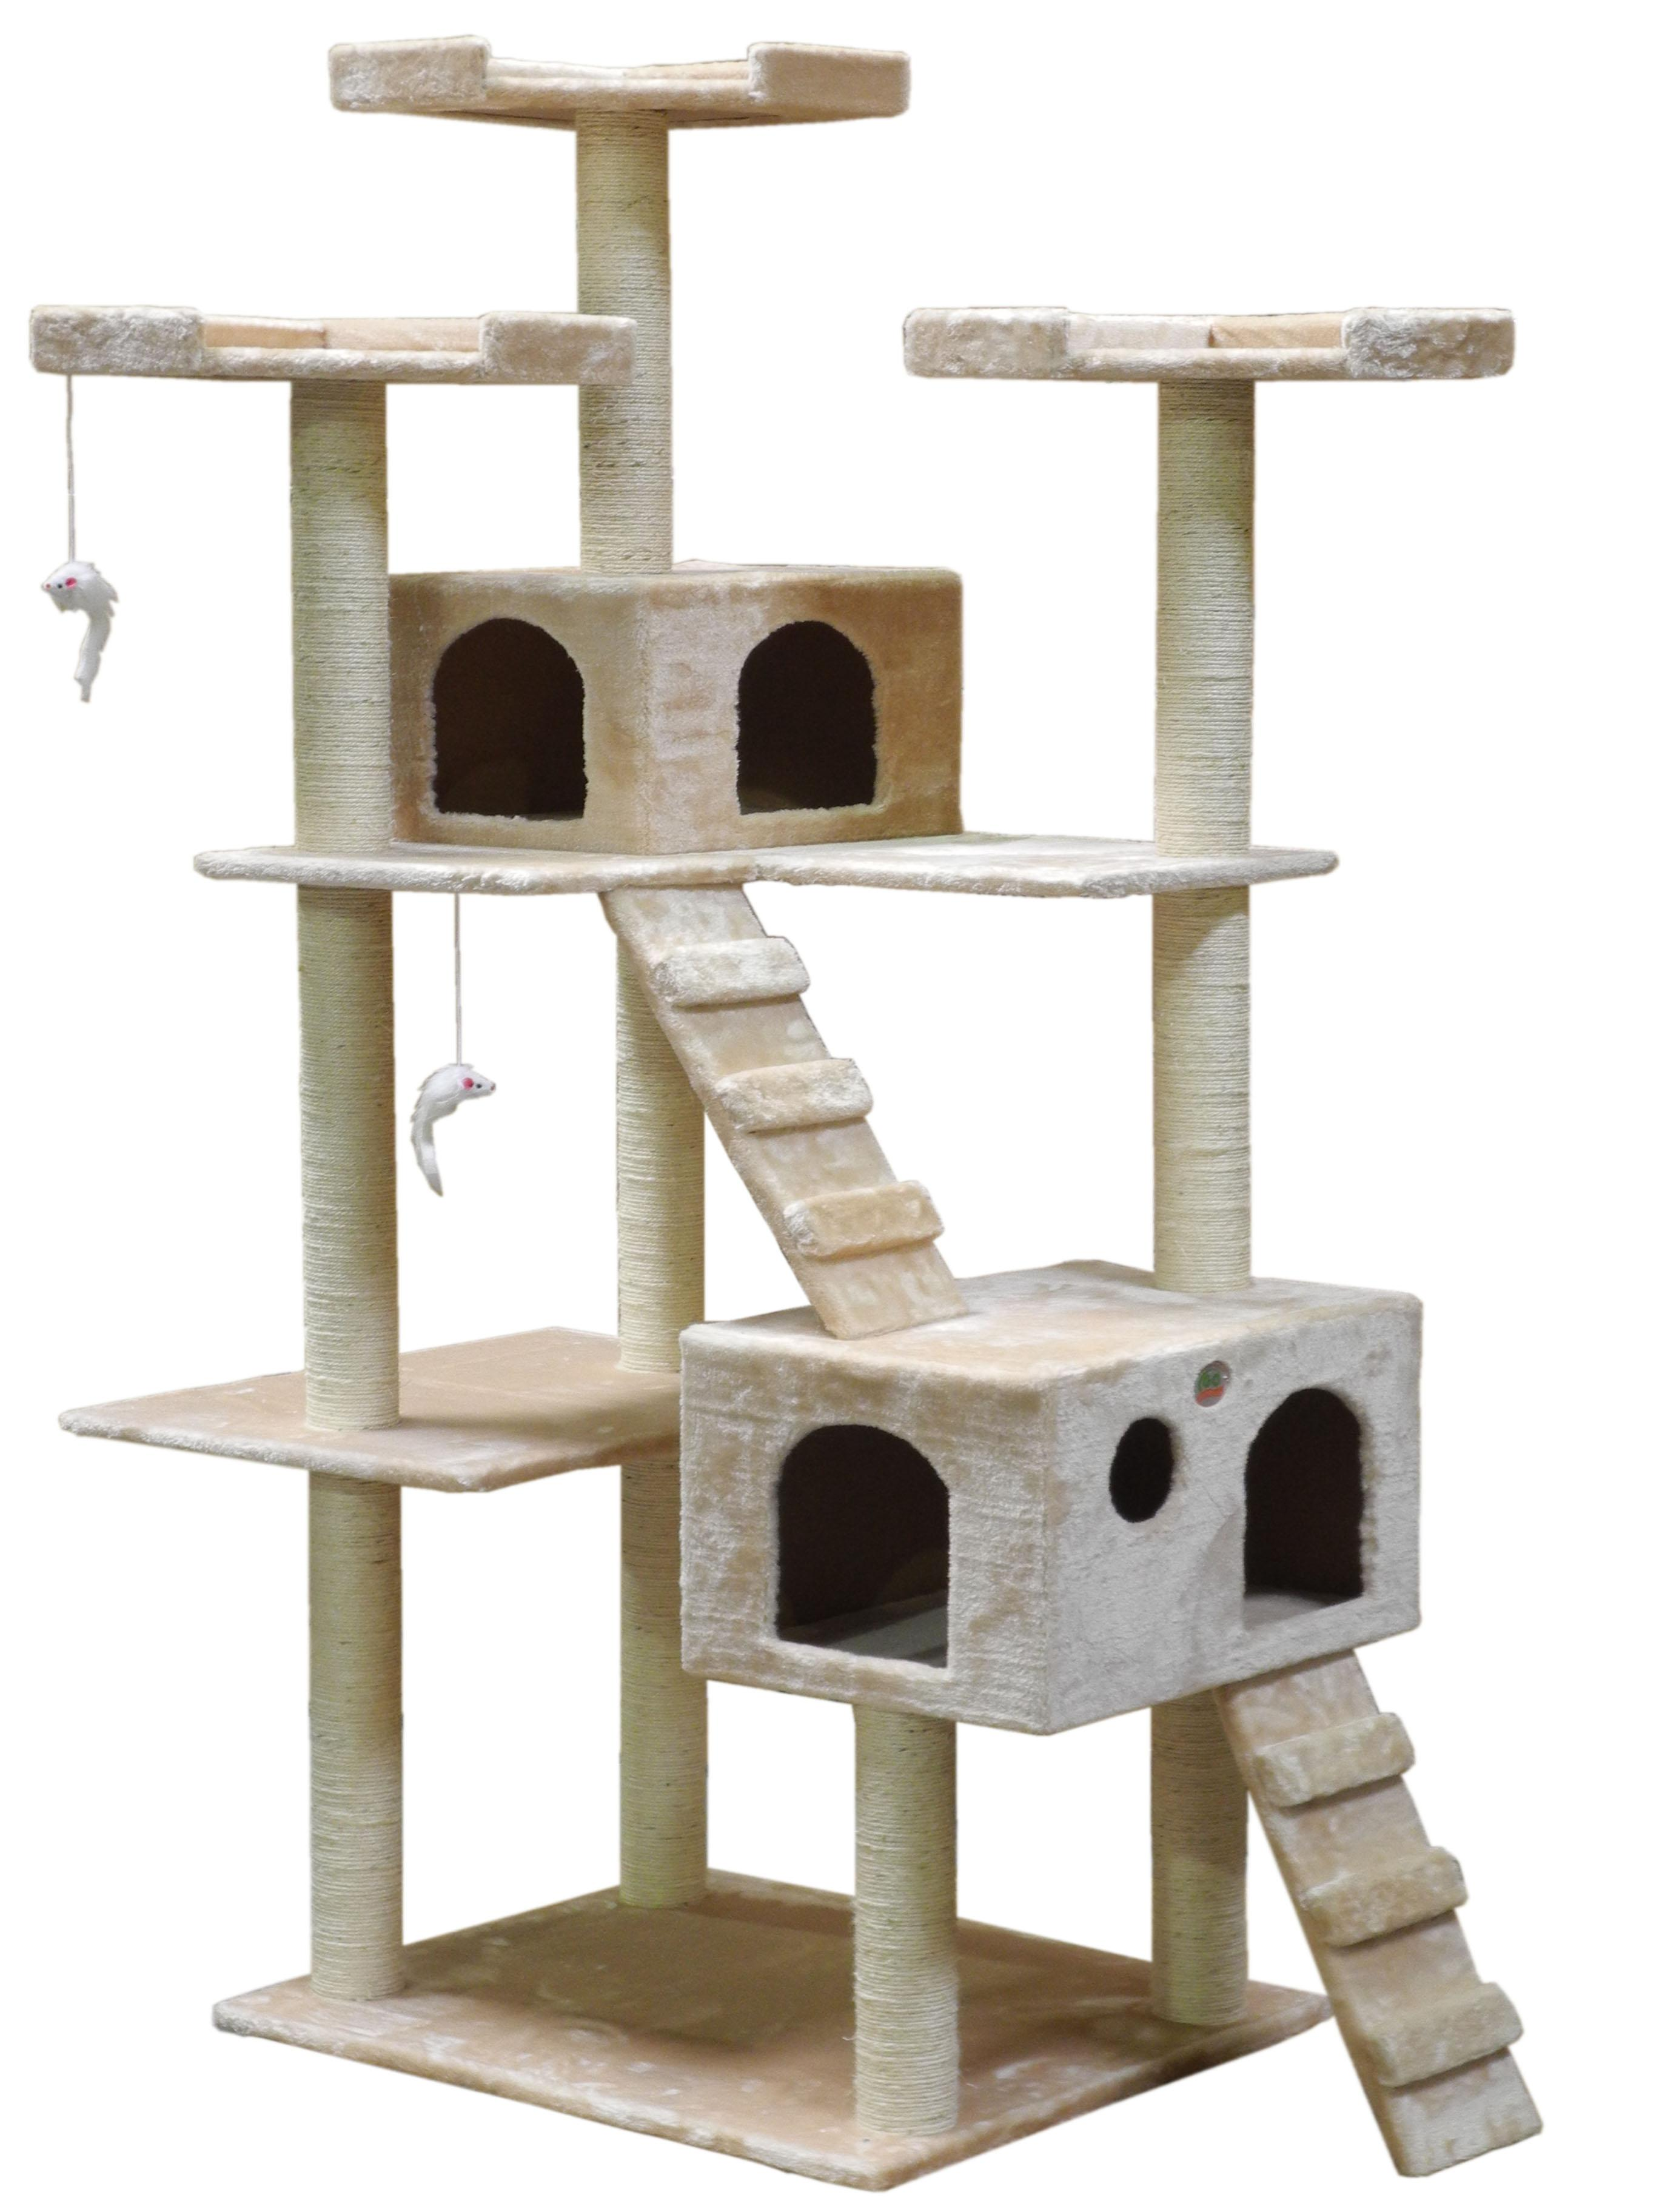 go pet club fbeige inch cat tree beige amazonca pet  - cat tree tower condo furniture scratcher